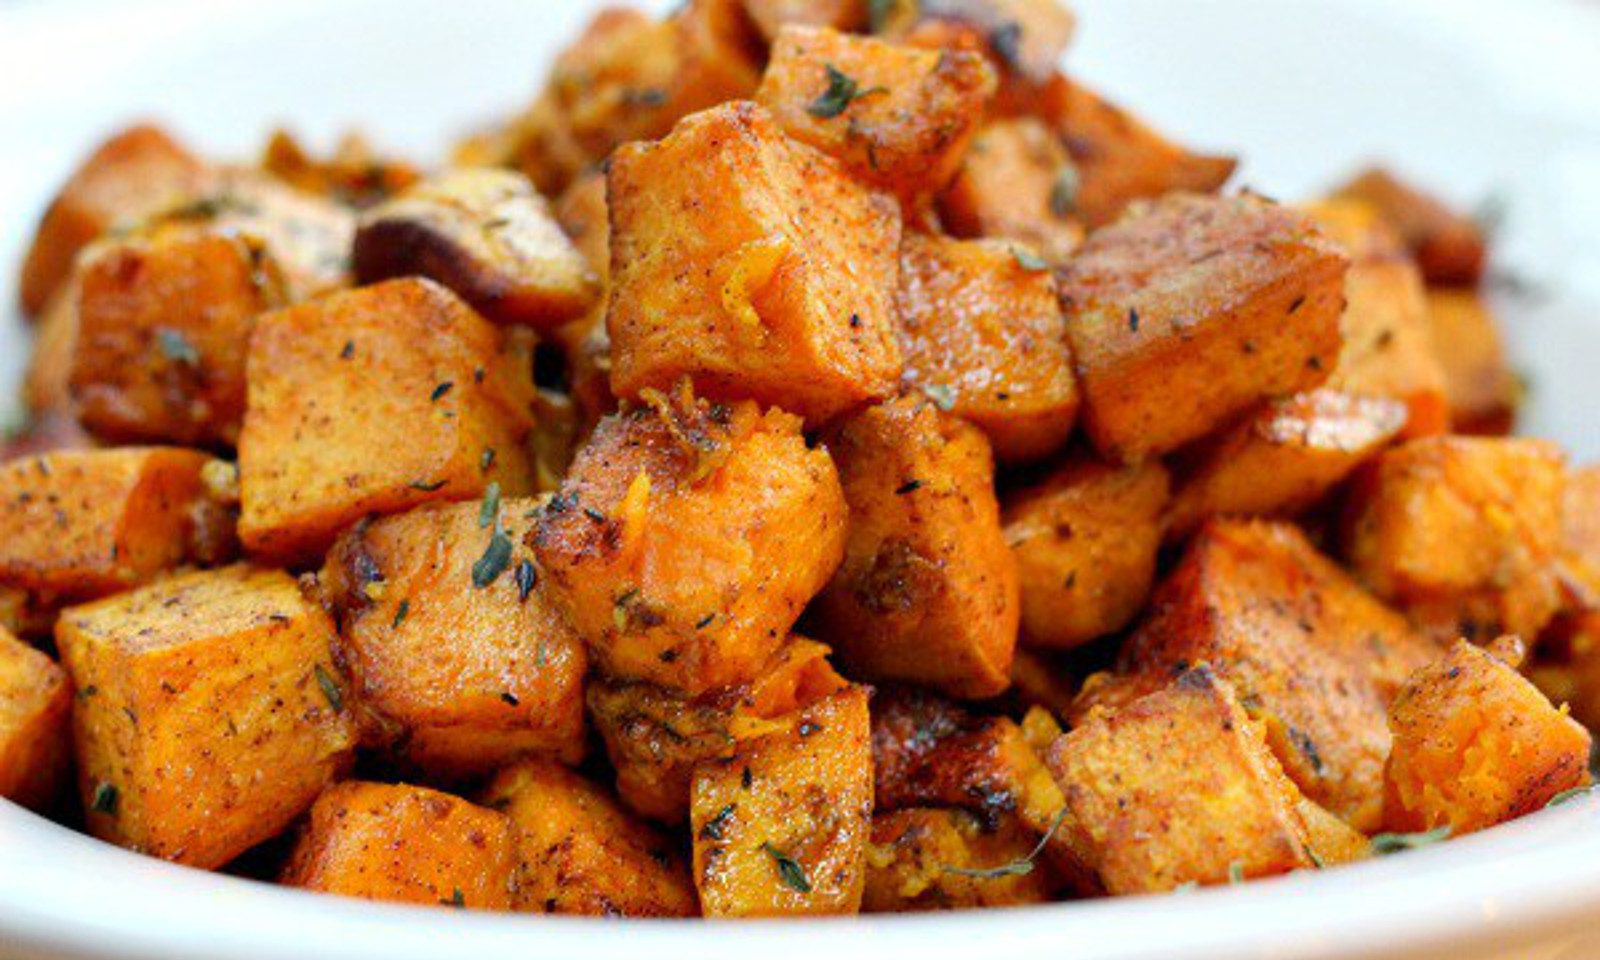 Cinnamon Turmeric Sweet Potatoes